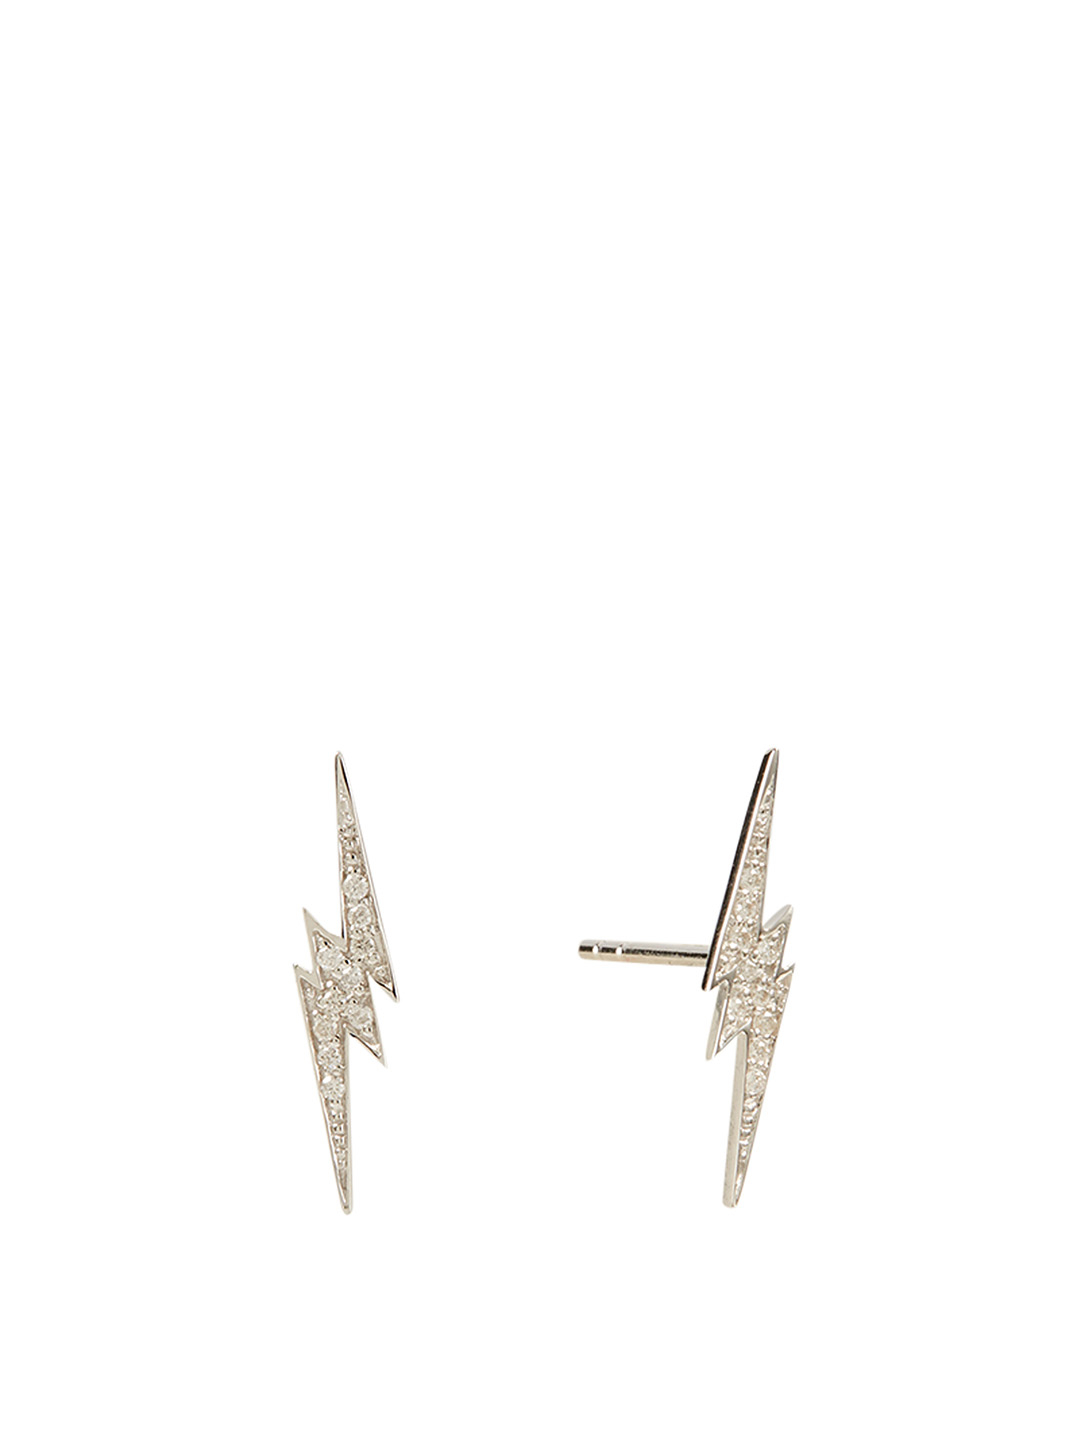 SYDNEY EVAN 14K White Gold Lightning Bolt Stud Earrings With Diamonds Women's Metallic